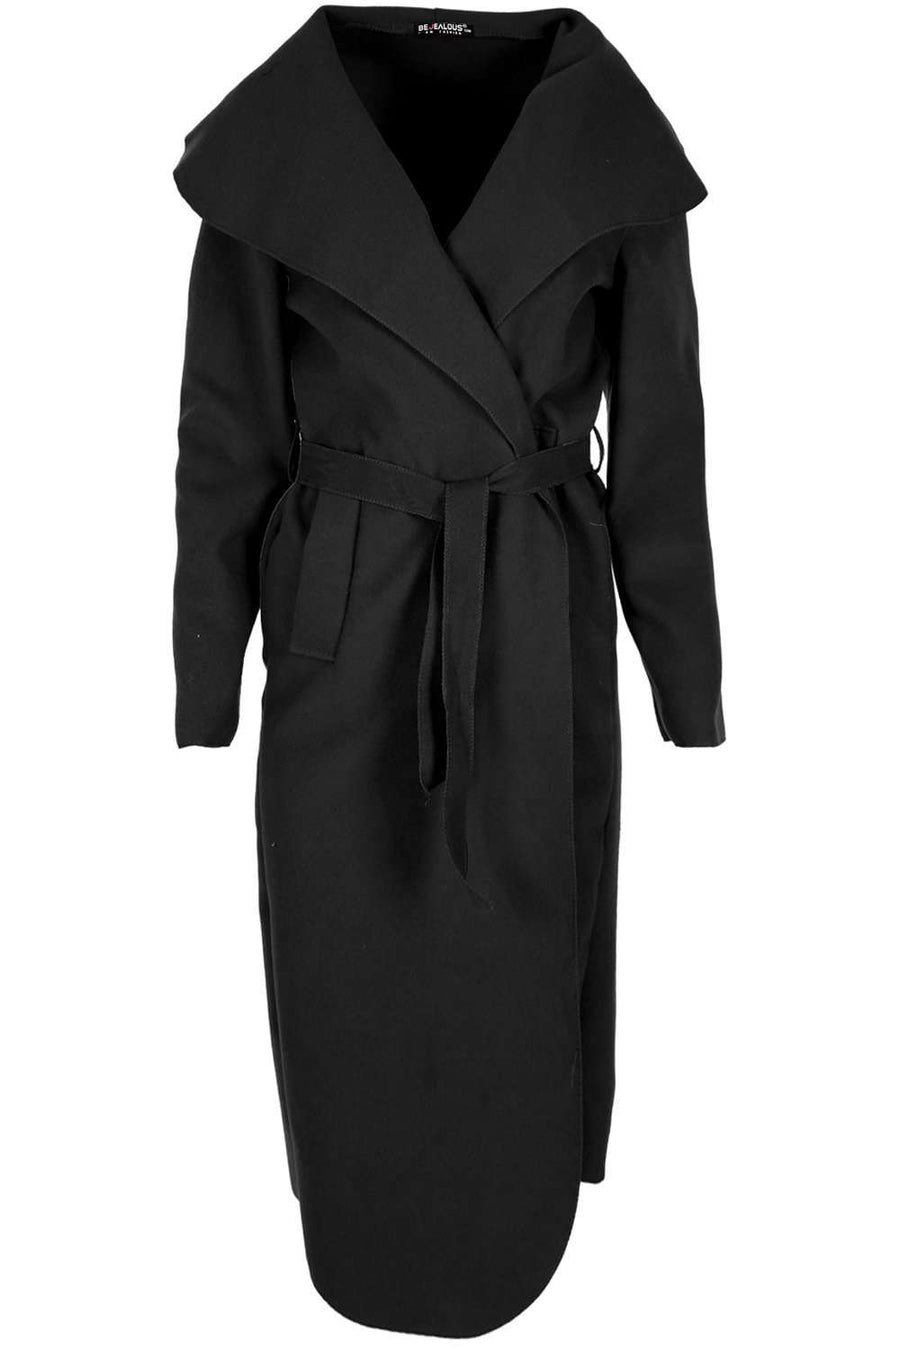 Karan Long Sleeve Midi Waterfall Jacket - bejealous-com